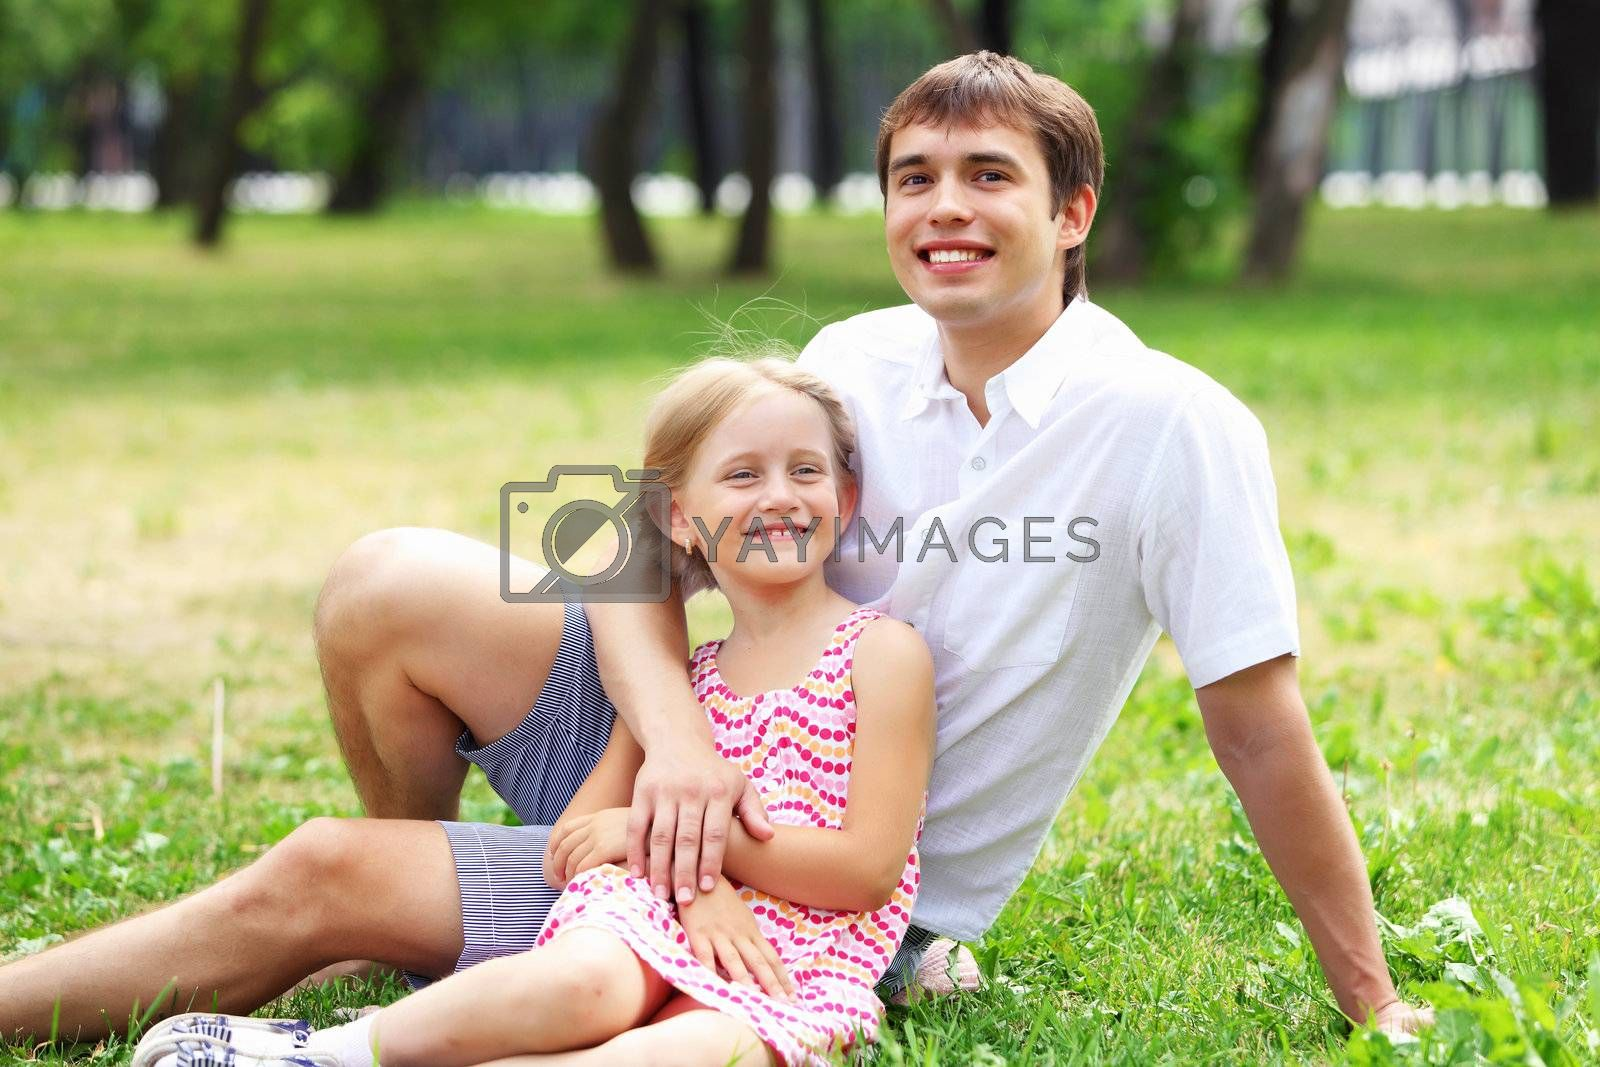 A dad and his daughter are together in the park